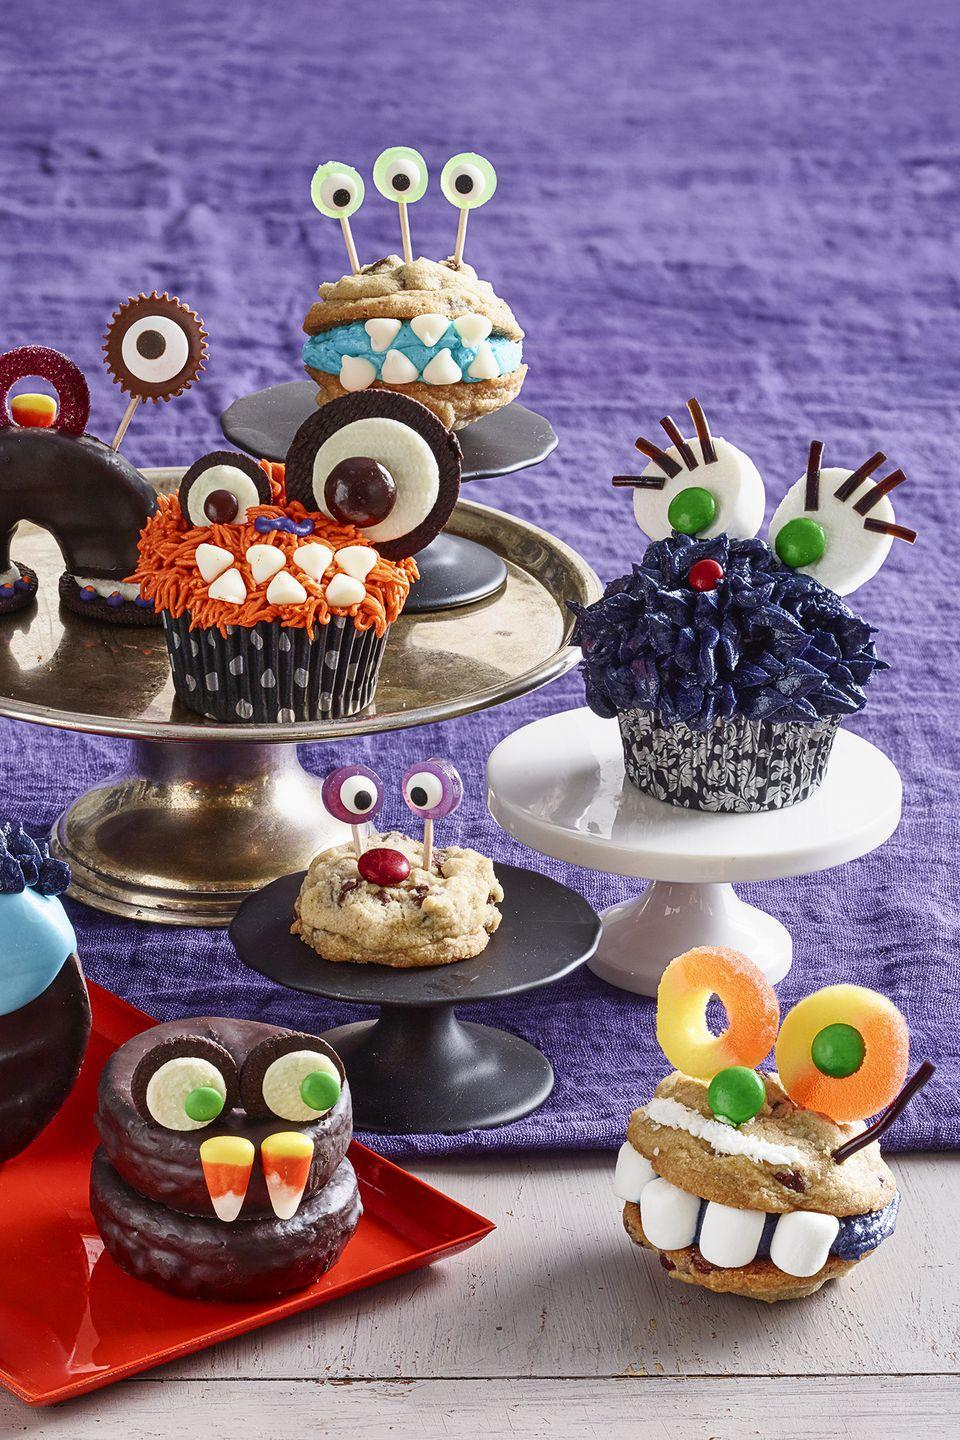 """<p>Make an assortment of multi-colored cupcake monsters, complete with licorice lashes and candy teeth, for your friends to snack on this Halloween.</p><p><em><a href=""""https://www.womansday.com/food-recipes/food-drinks/a28860615/one-eyed-monster-cupcake-recipe/"""" rel=""""nofollow noopener"""" target=""""_blank"""" data-ylk=""""slk:Get the Monster Cupcakes recipe."""" class=""""link rapid-noclick-resp"""">Get the Monster Cupcakes recipe.</a></em></p>"""